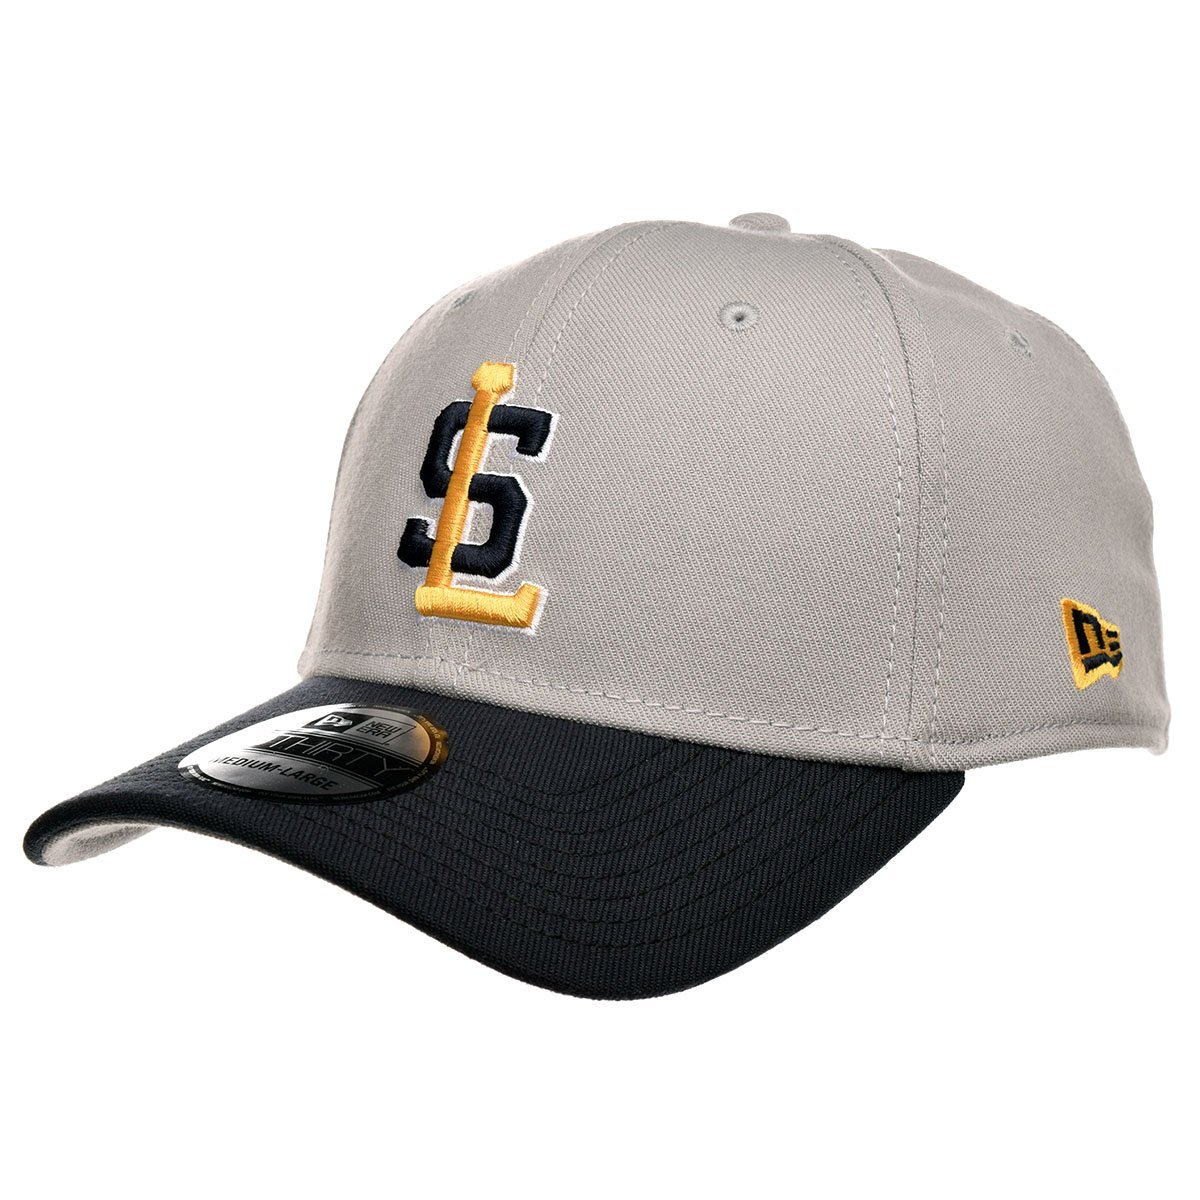 7c3dab9d69d Get Quotations · Salt Lake Bees New Era Gray Navy Throwback 39Thirty  Stretch Fit Hat (Gray)